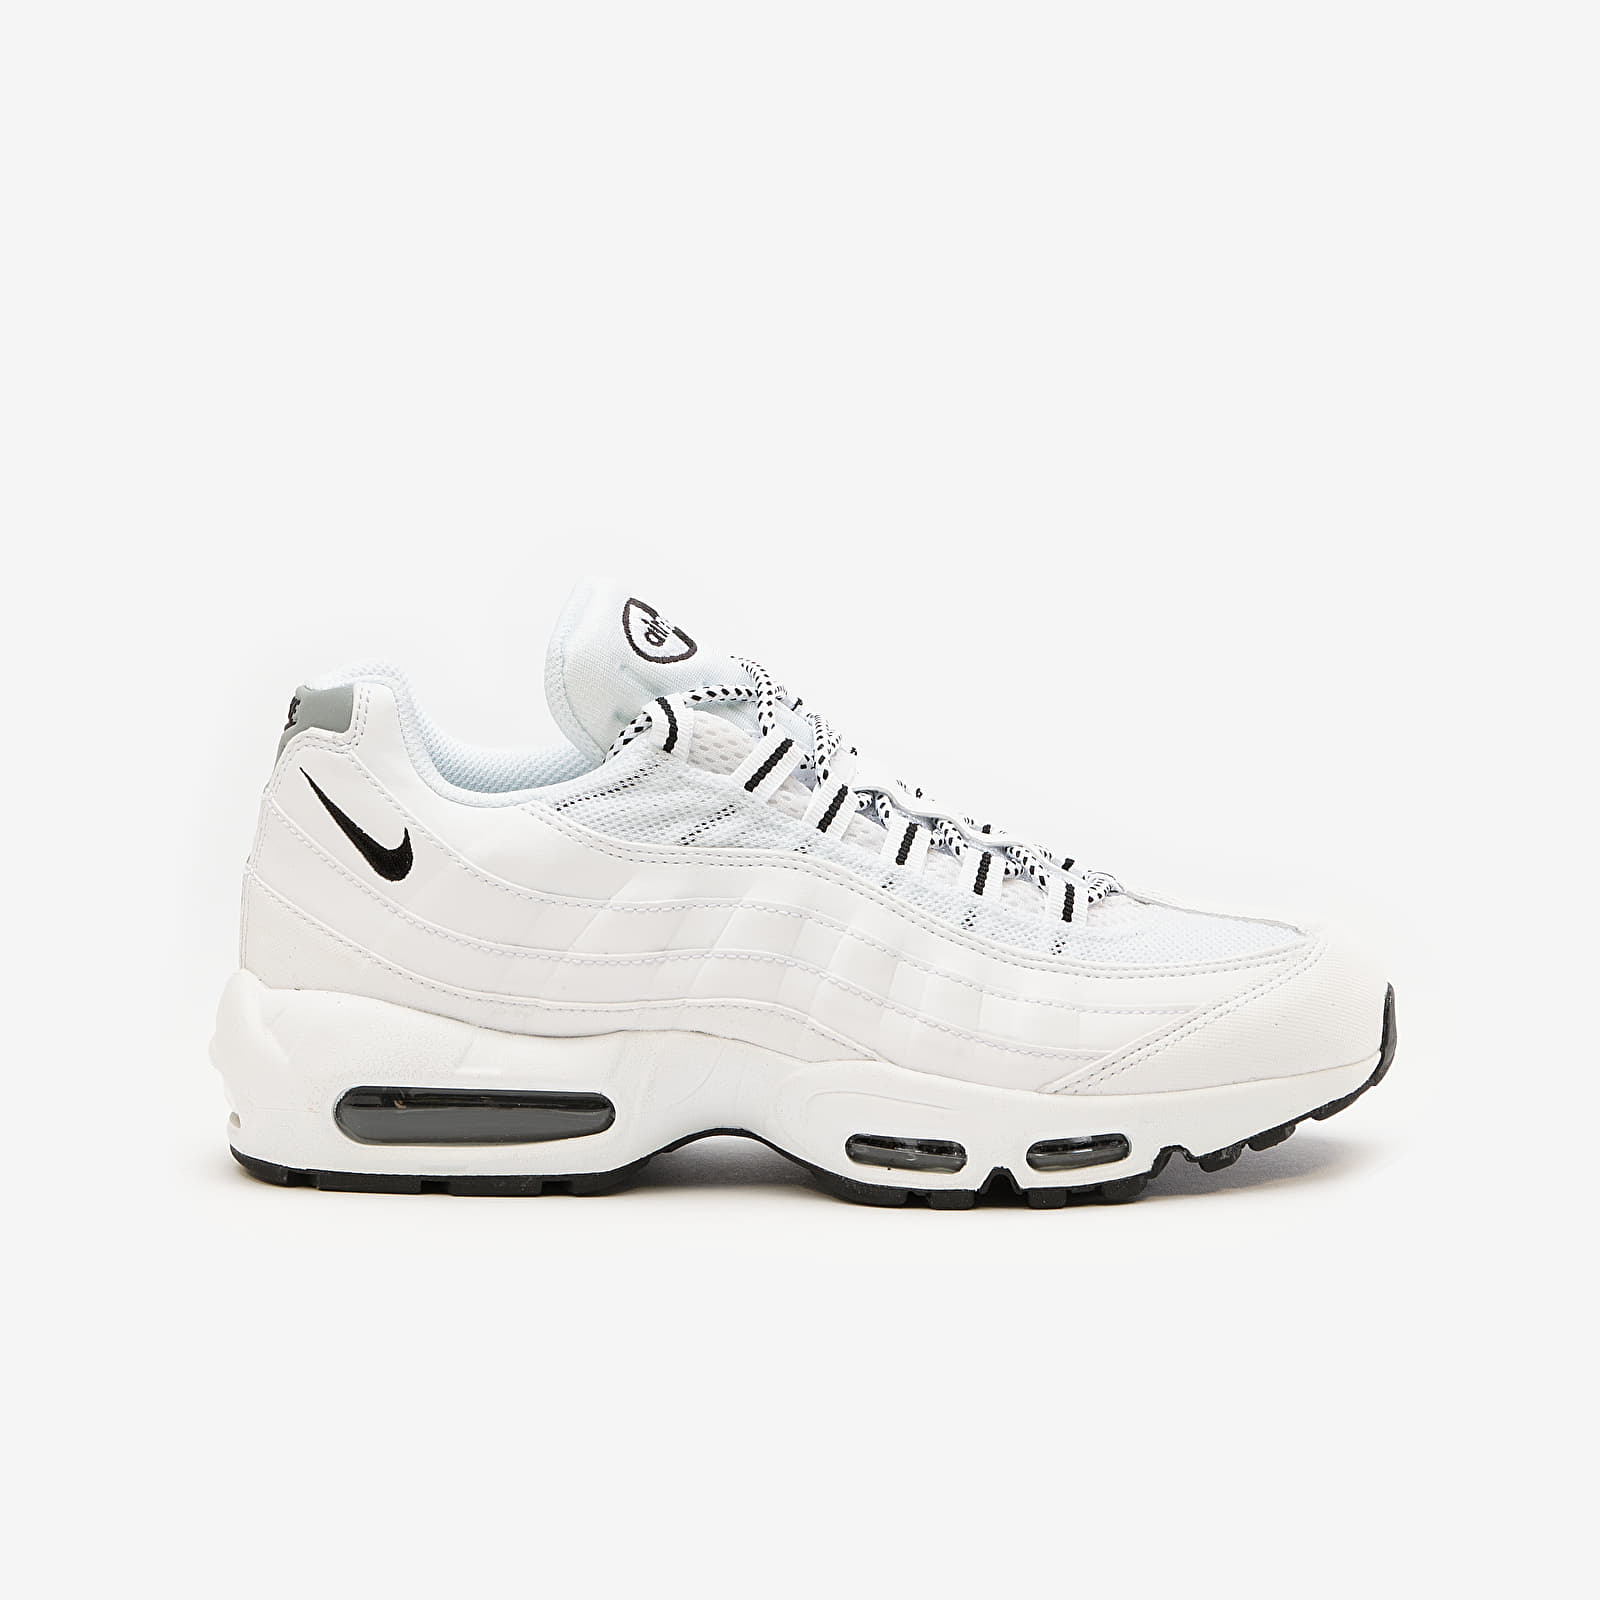 Herenschoenen Nike Air Max 95 White/ Black-Black